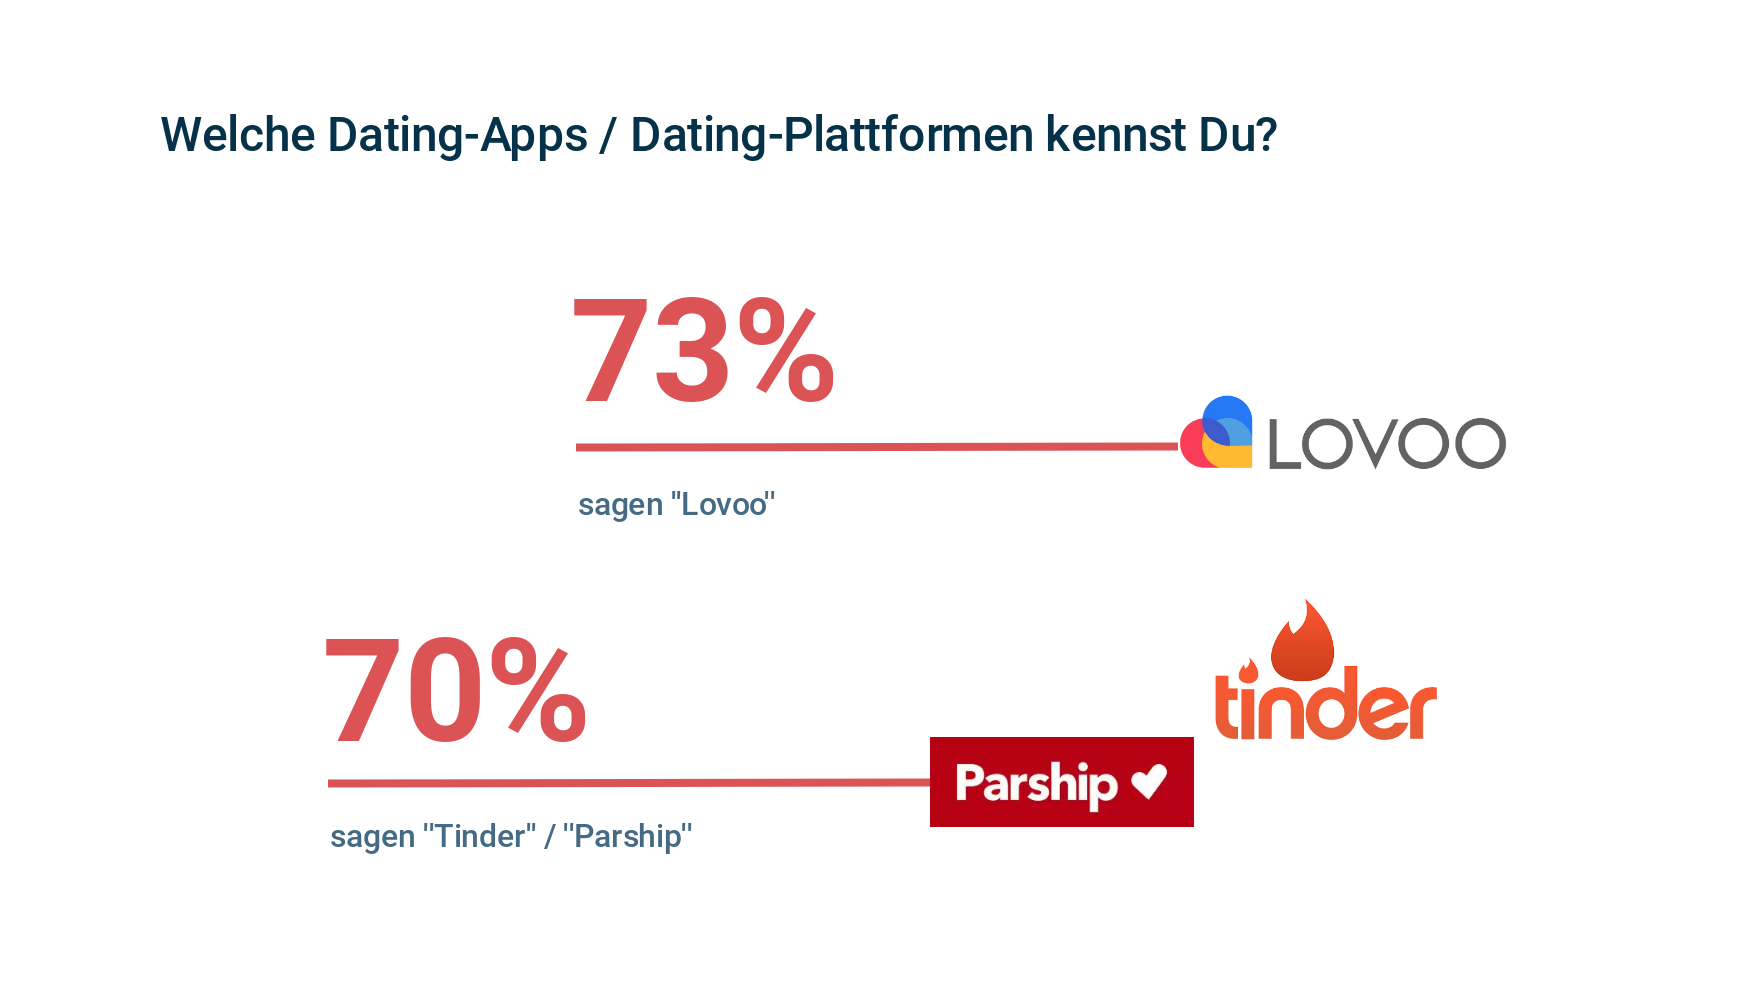 Appinio Studie Zum Online-Dating. Bekanntkeit von Dating-App und Online-Dating-Plattformen